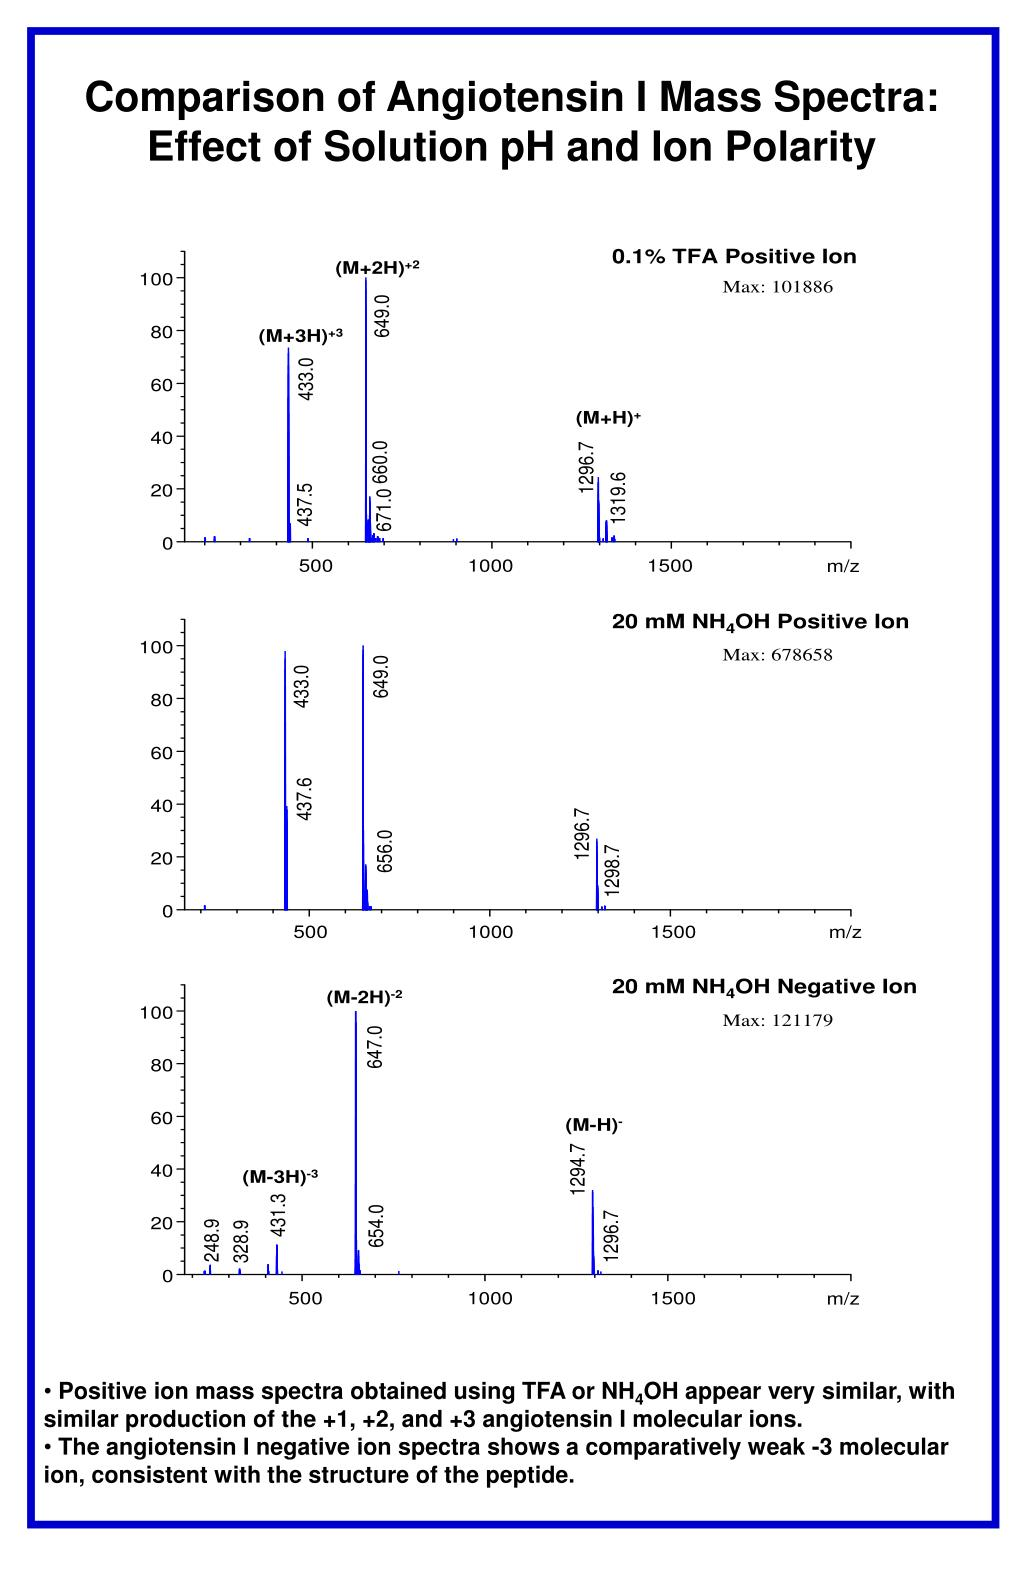 Comparison of Angiotensin I Mass Spectra: